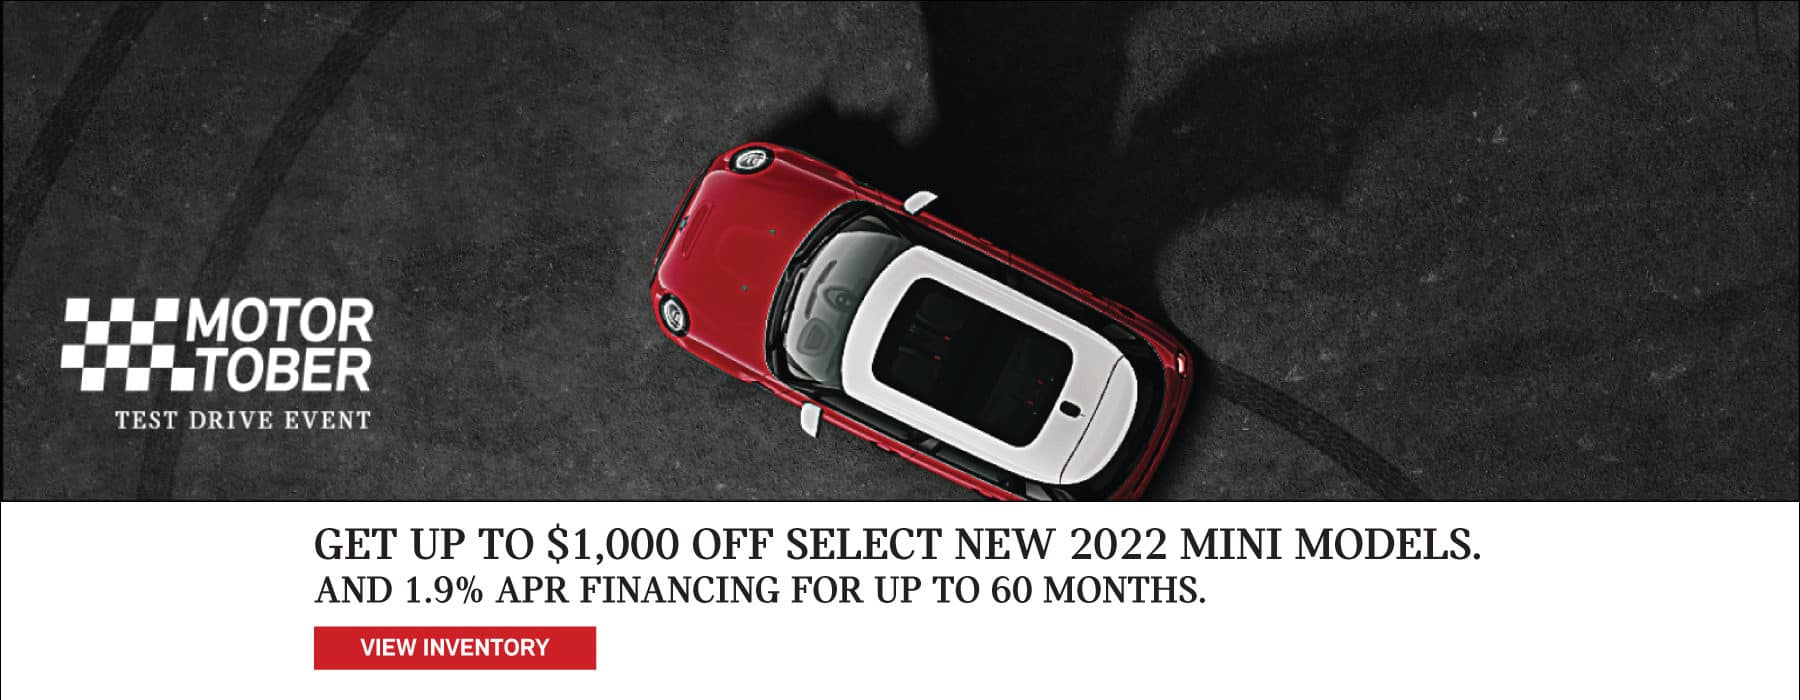 GET UP TO $1,000 OFF SELECT NEW 2022 MINI MODELS. AND 1.9% APR FINANCING FOR UP TO 60 MONTHS.